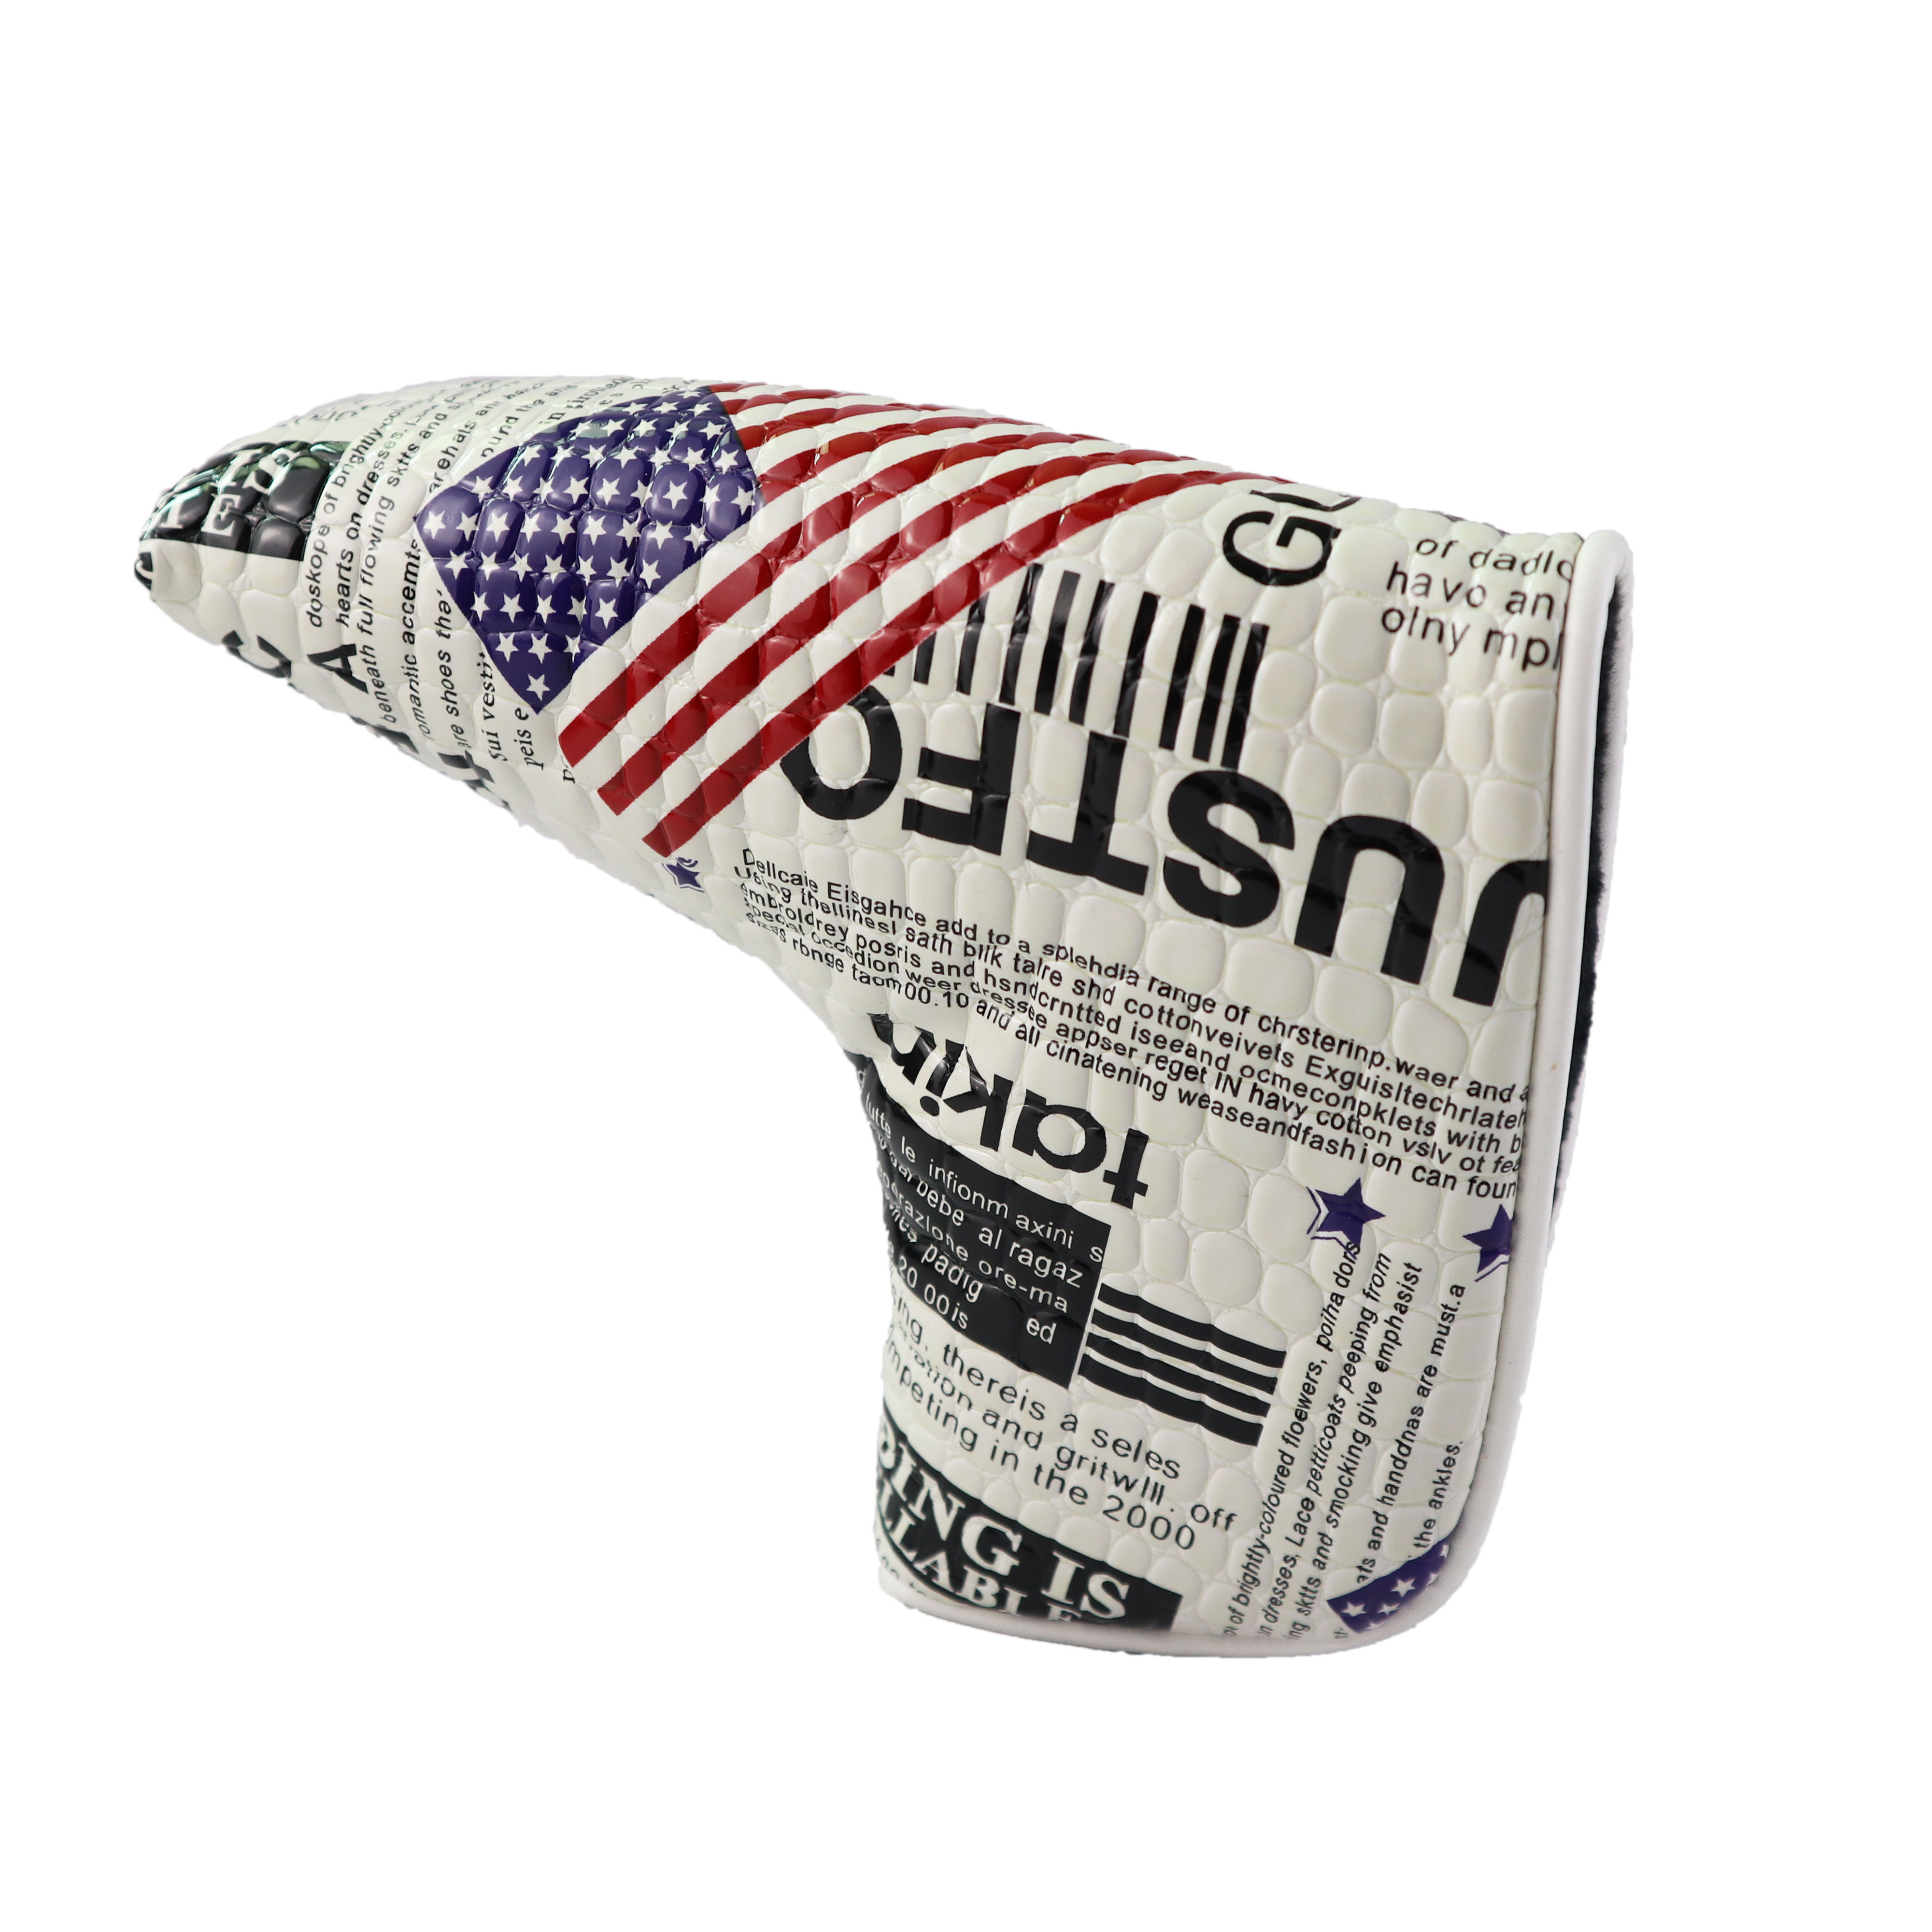 Golf Putter Cover Magnetic Closure American Flag PU Leather Waterproof Golf Head Cover For Blade Putter